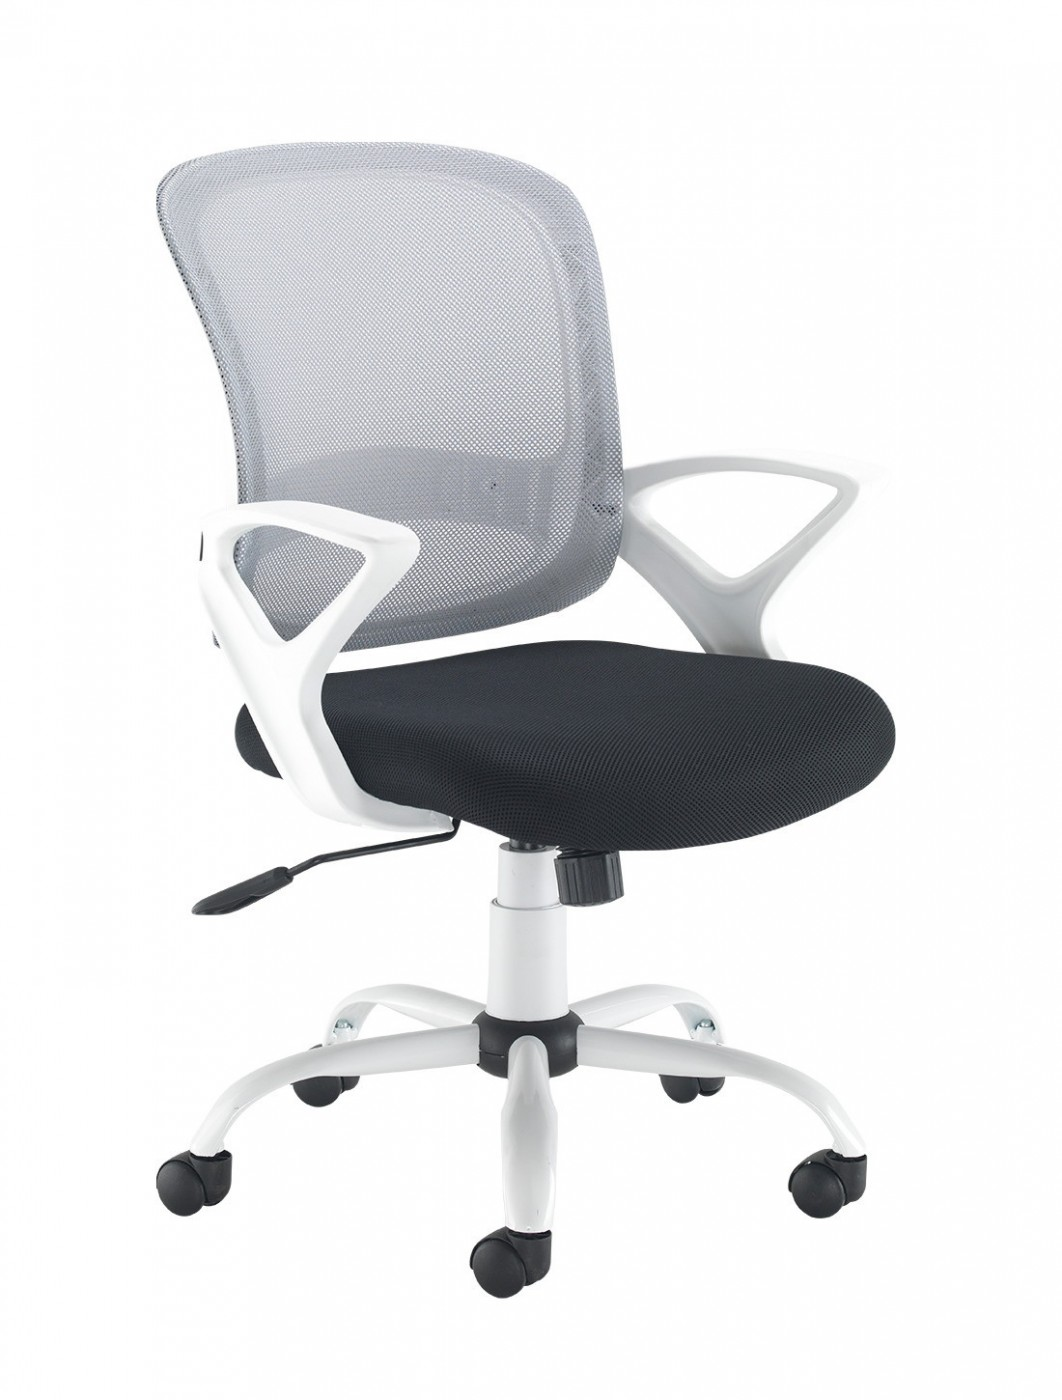 Mesh Office Chair White Tyler Task Chair Tyl 300t1 By Dams